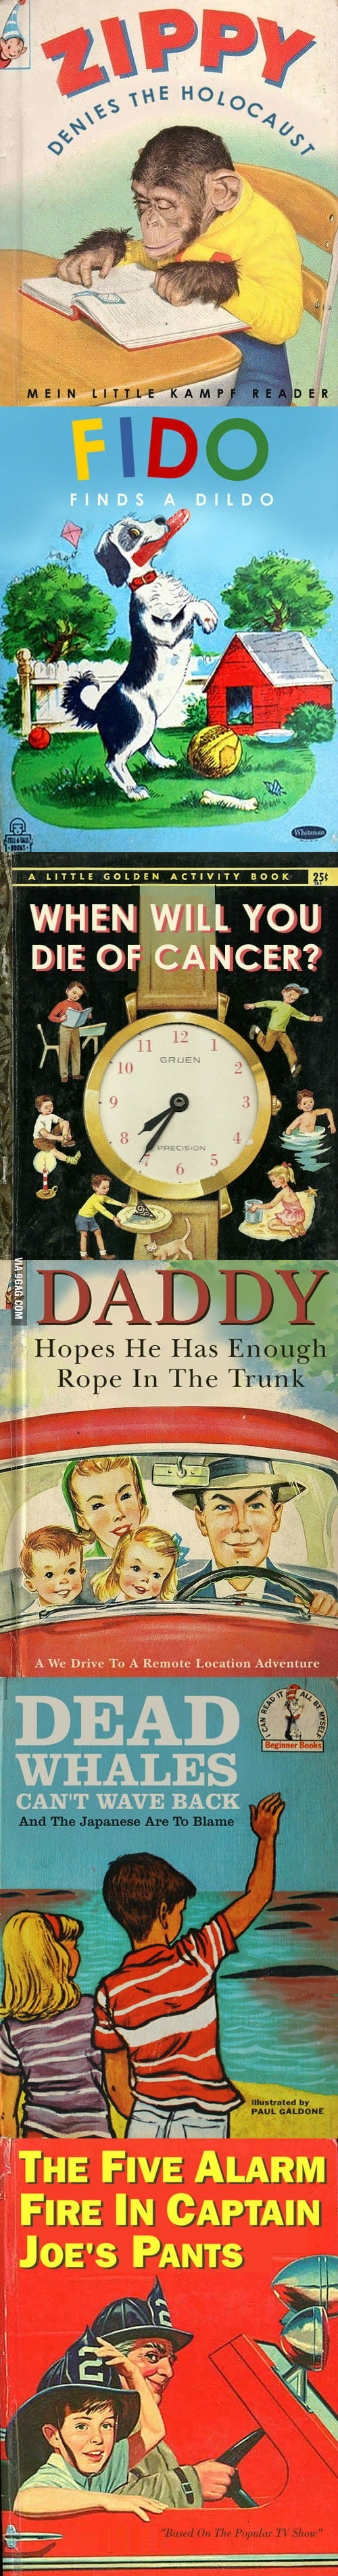 Compilation of badly named childrens books